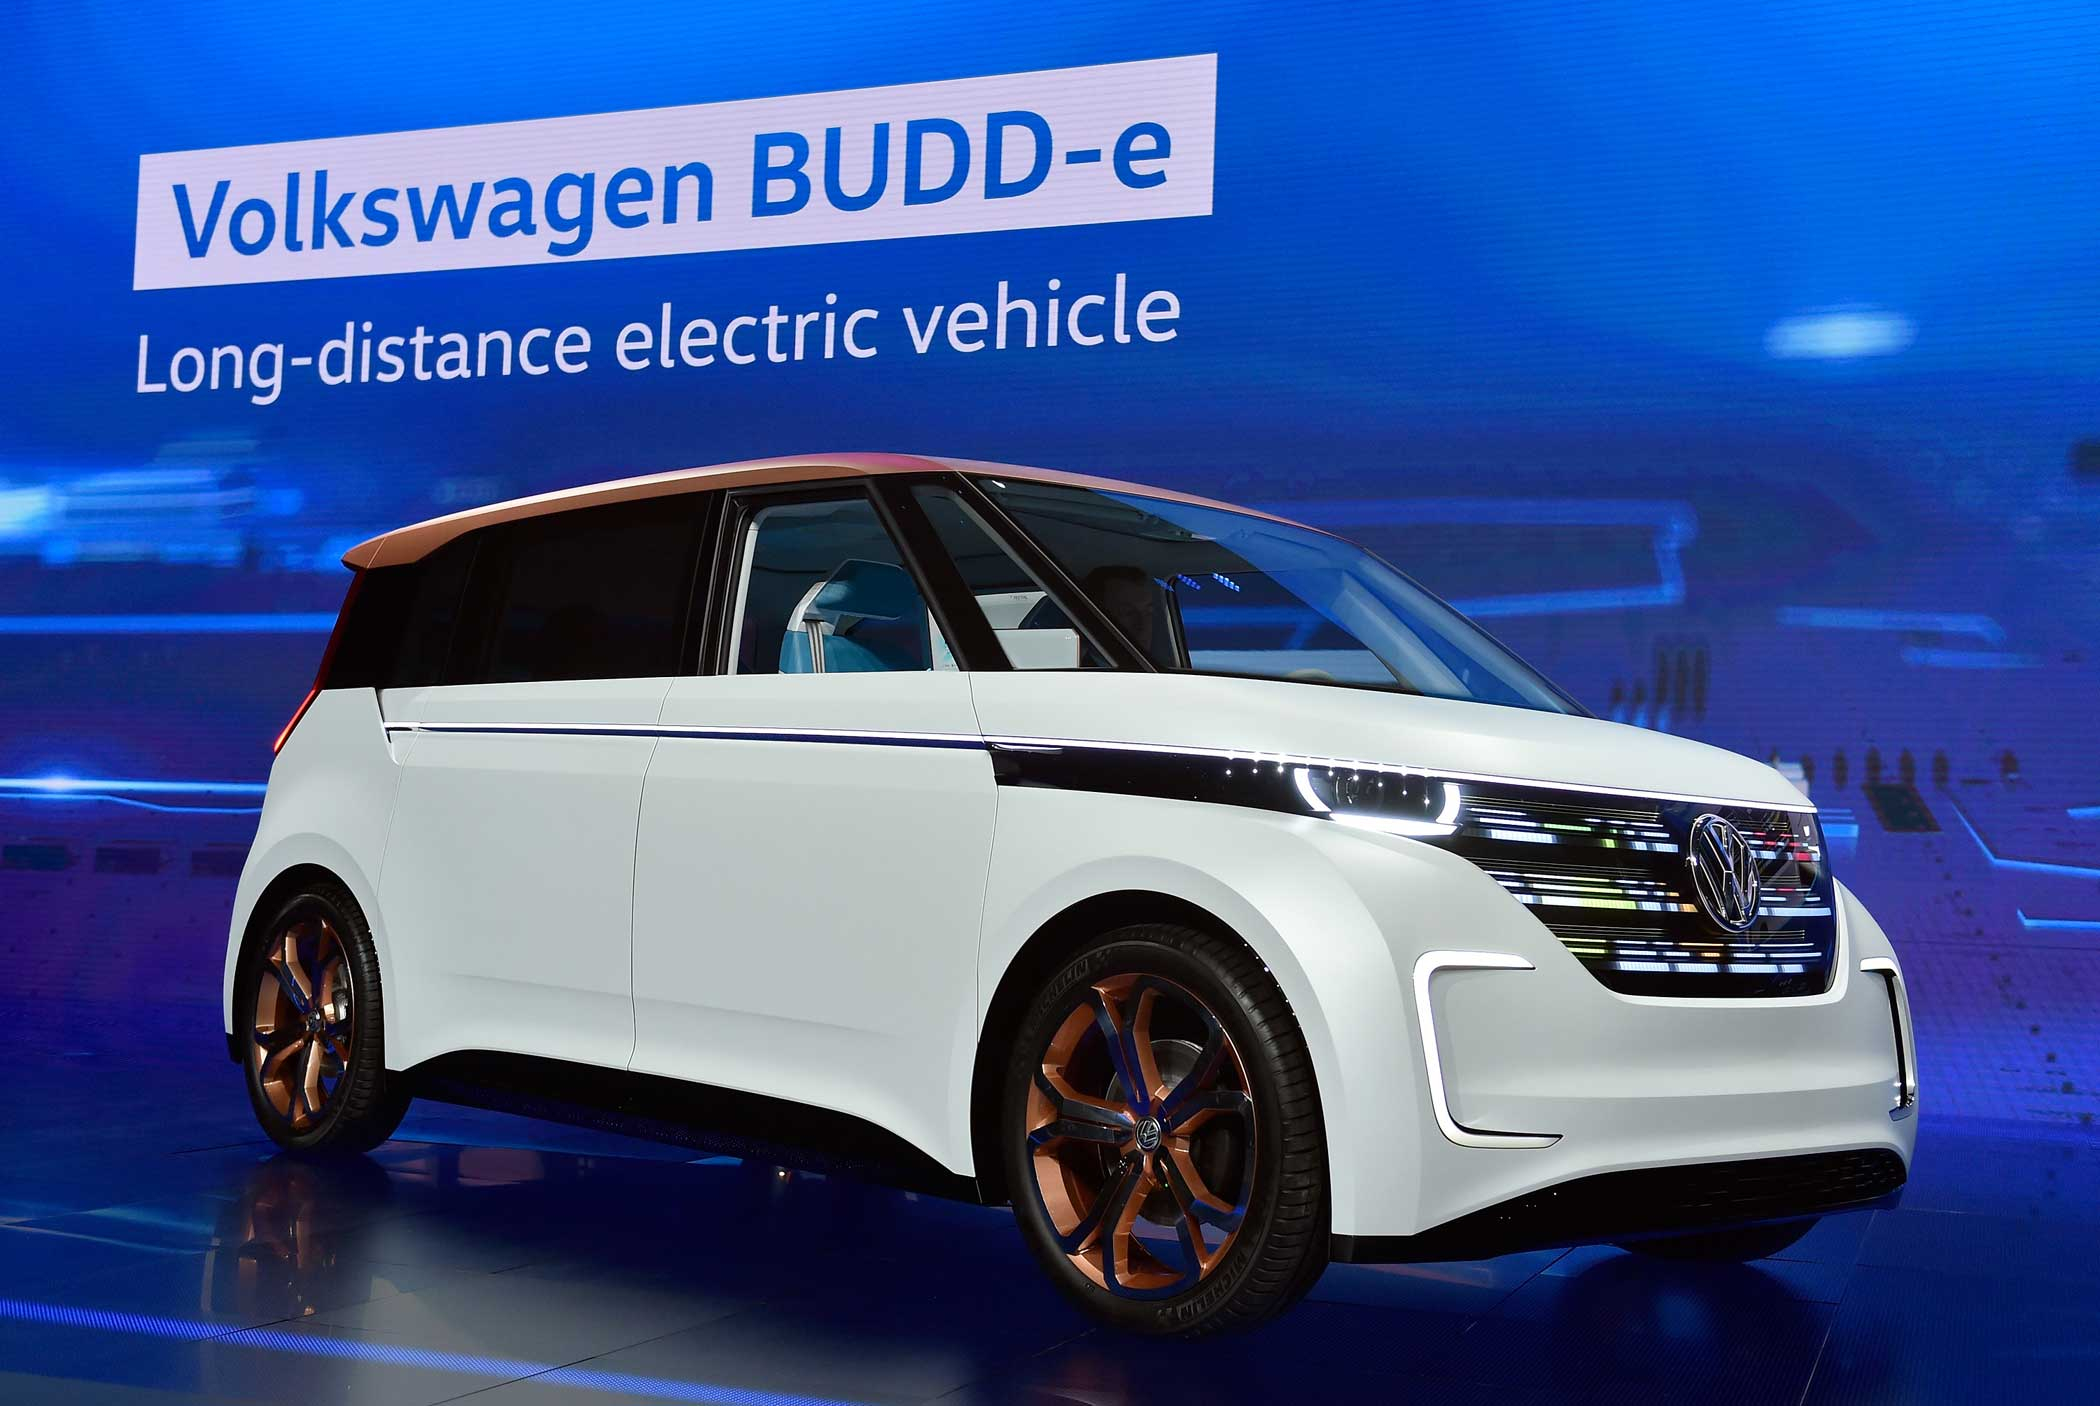 The Volkswagen BUDD-e, a long distance electric vehicle.